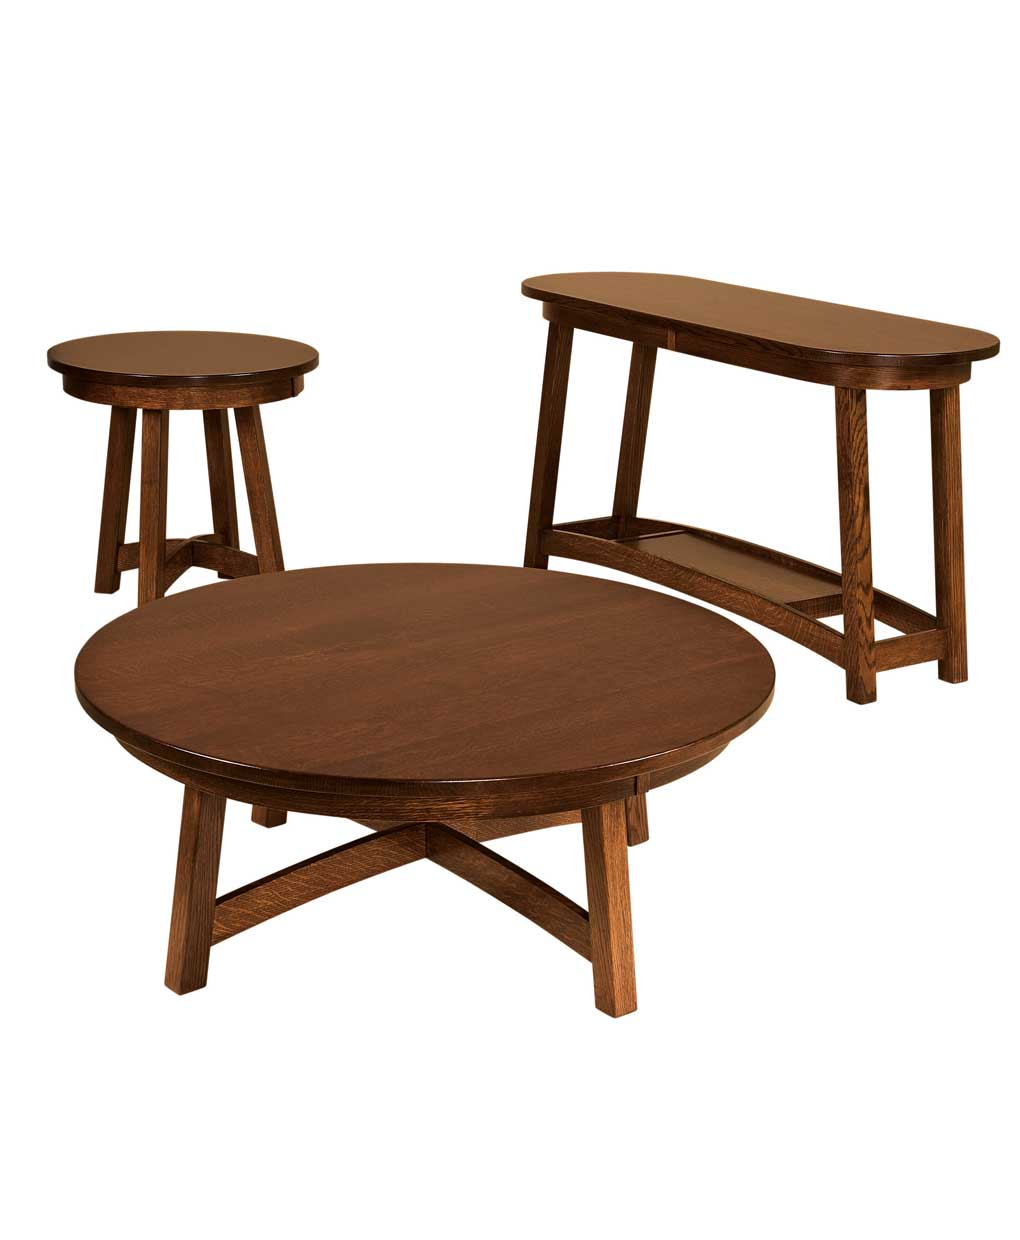 dining room furniture american made images